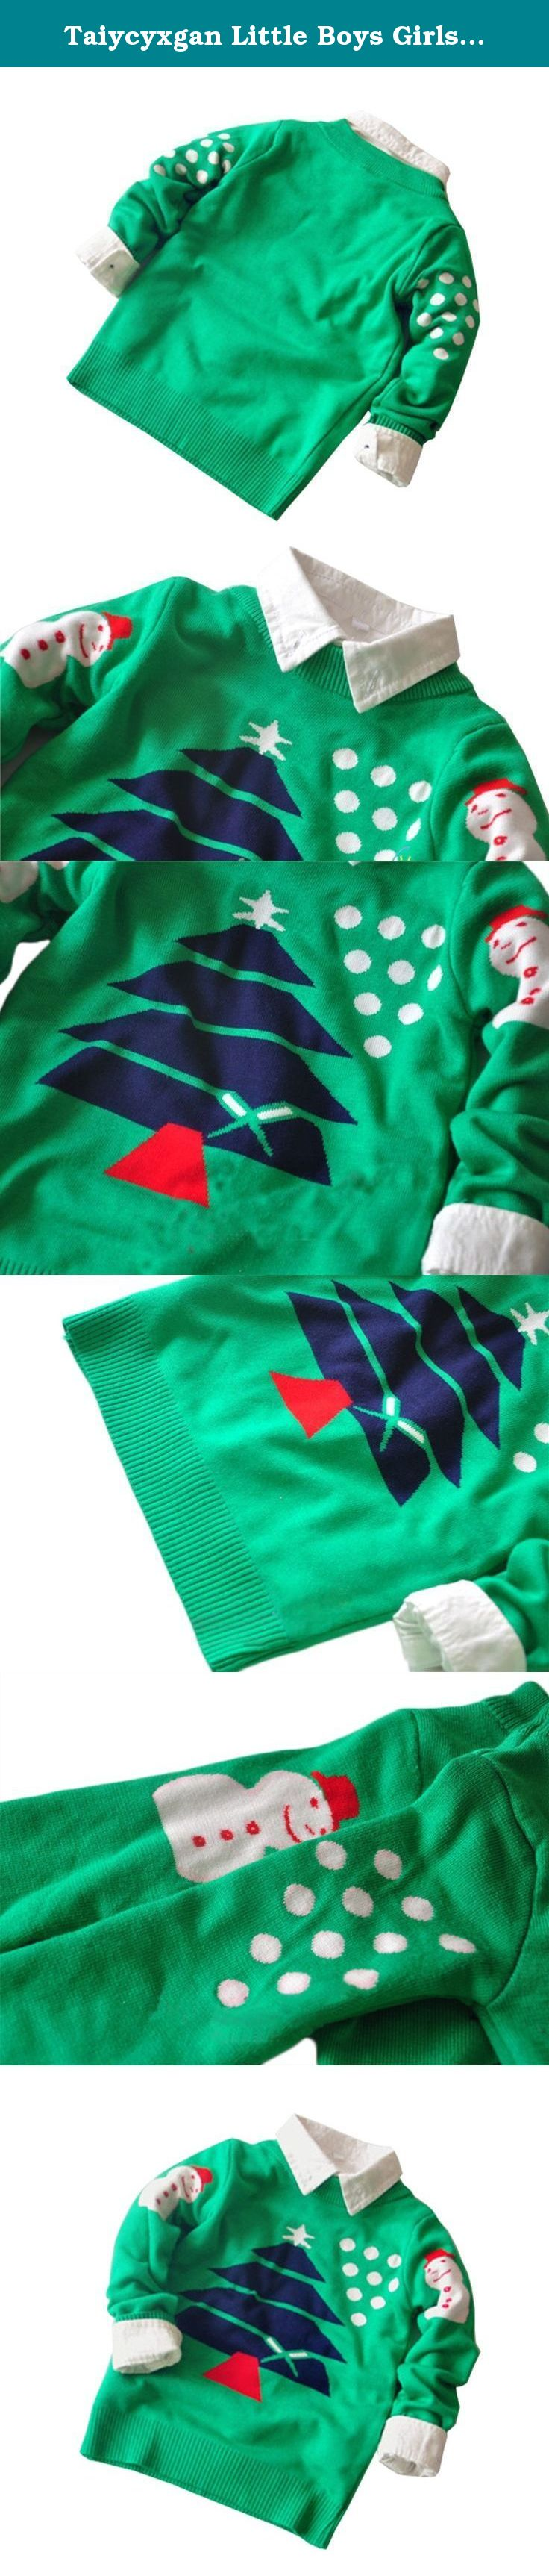 TAIYCYXGAN Little Toddler Boys Girls Christmas Tree Sweatshirt Spots Sweater